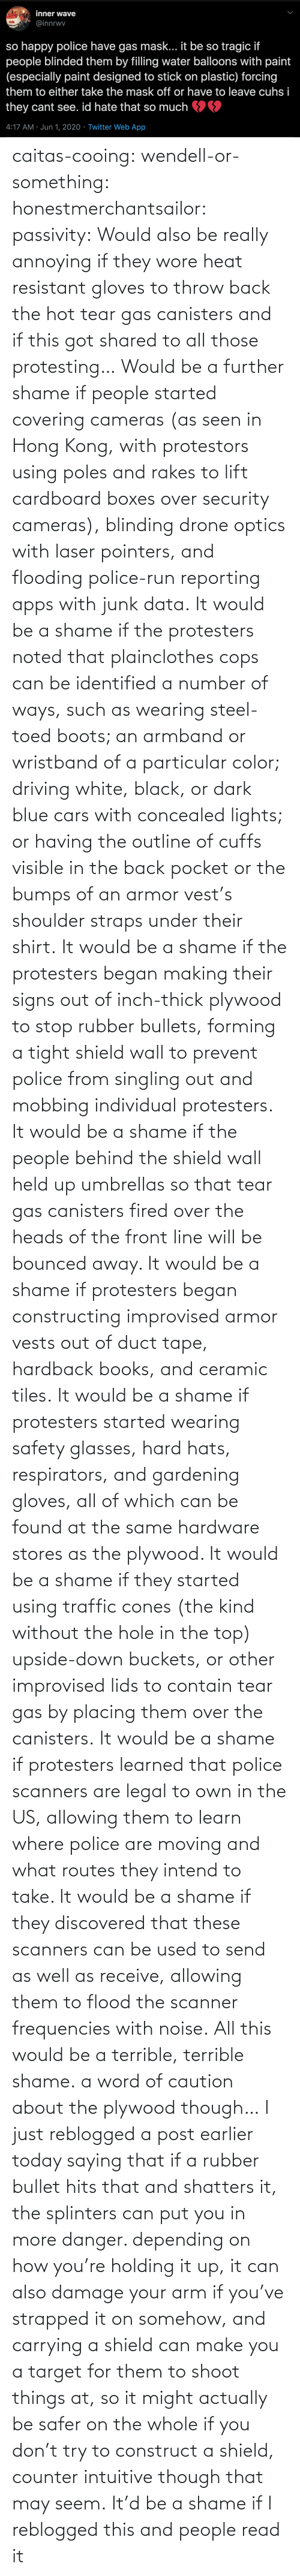 The Us: caitas-cooing:  wendell-or-something: honestmerchantsailor:  passivity: Would also be really annoying if they wore heat resistant gloves to throw back the hot tear gas canisters and if this got shared to all those protesting… Would be a further shame if people started covering cameras (as seen in Hong Kong, with protestors using poles and rakes to lift cardboard boxes over security cameras), blinding drone optics with laser pointers, and flooding police-run reporting apps with junk data. It would be a shame if the protesters noted that plainclothes cops can be identified a number of ways, such as wearing steel-toed boots; an armband or wristband of a particular color; driving white, black, or dark blue cars with concealed lights; or having the outline of cuffs visible in the back pocket or the bumps of an armor vest's shoulder straps under their shirt. It would be a shame if the protesters began making their signs out of inch-thick plywood to stop rubber bullets, forming a tight shield wall to prevent police from singling out and mobbing individual protesters. It would be a shame if the people behind the shield wall held up umbrellas so that tear gas canisters fired over the heads of the front line will be bounced away. It would be a shame if protesters began constructing improvised armor vests out of duct tape, hardback books, and ceramic tiles. It would be a shame if protesters started wearing safety glasses, hard hats, respirators, and gardening gloves, all of which can be found at the same hardware stores as the plywood. It would be a shame if they started using traffic cones (the kind without the hole in the top) upside-down buckets, or other improvised lids to contain tear gas by placing them over the canisters. It would be a shame if protesters learned that police scanners are legal to own in the US, allowing them to learn where police are moving and what routes they intend to take. It would be a shame if they discovered that these scanners can be used to send as well as receive, allowing them to flood the scanner frequencies with noise. All this would be a terrible, terrible shame.    a word of caution about the plywood though… I just reblogged a post earlier today saying that if a rubber bullet hits that and shatters it, the splinters can put you in more danger. depending on how you're holding it up, it can also damage your arm if you've strapped it on somehow, and carrying a shield can make you a target for them to shoot things at, so it might actually be safer on the whole if you don't try to construct a shield, counter intuitive though that may seem.    It'd be a shame if I reblogged this and people read it